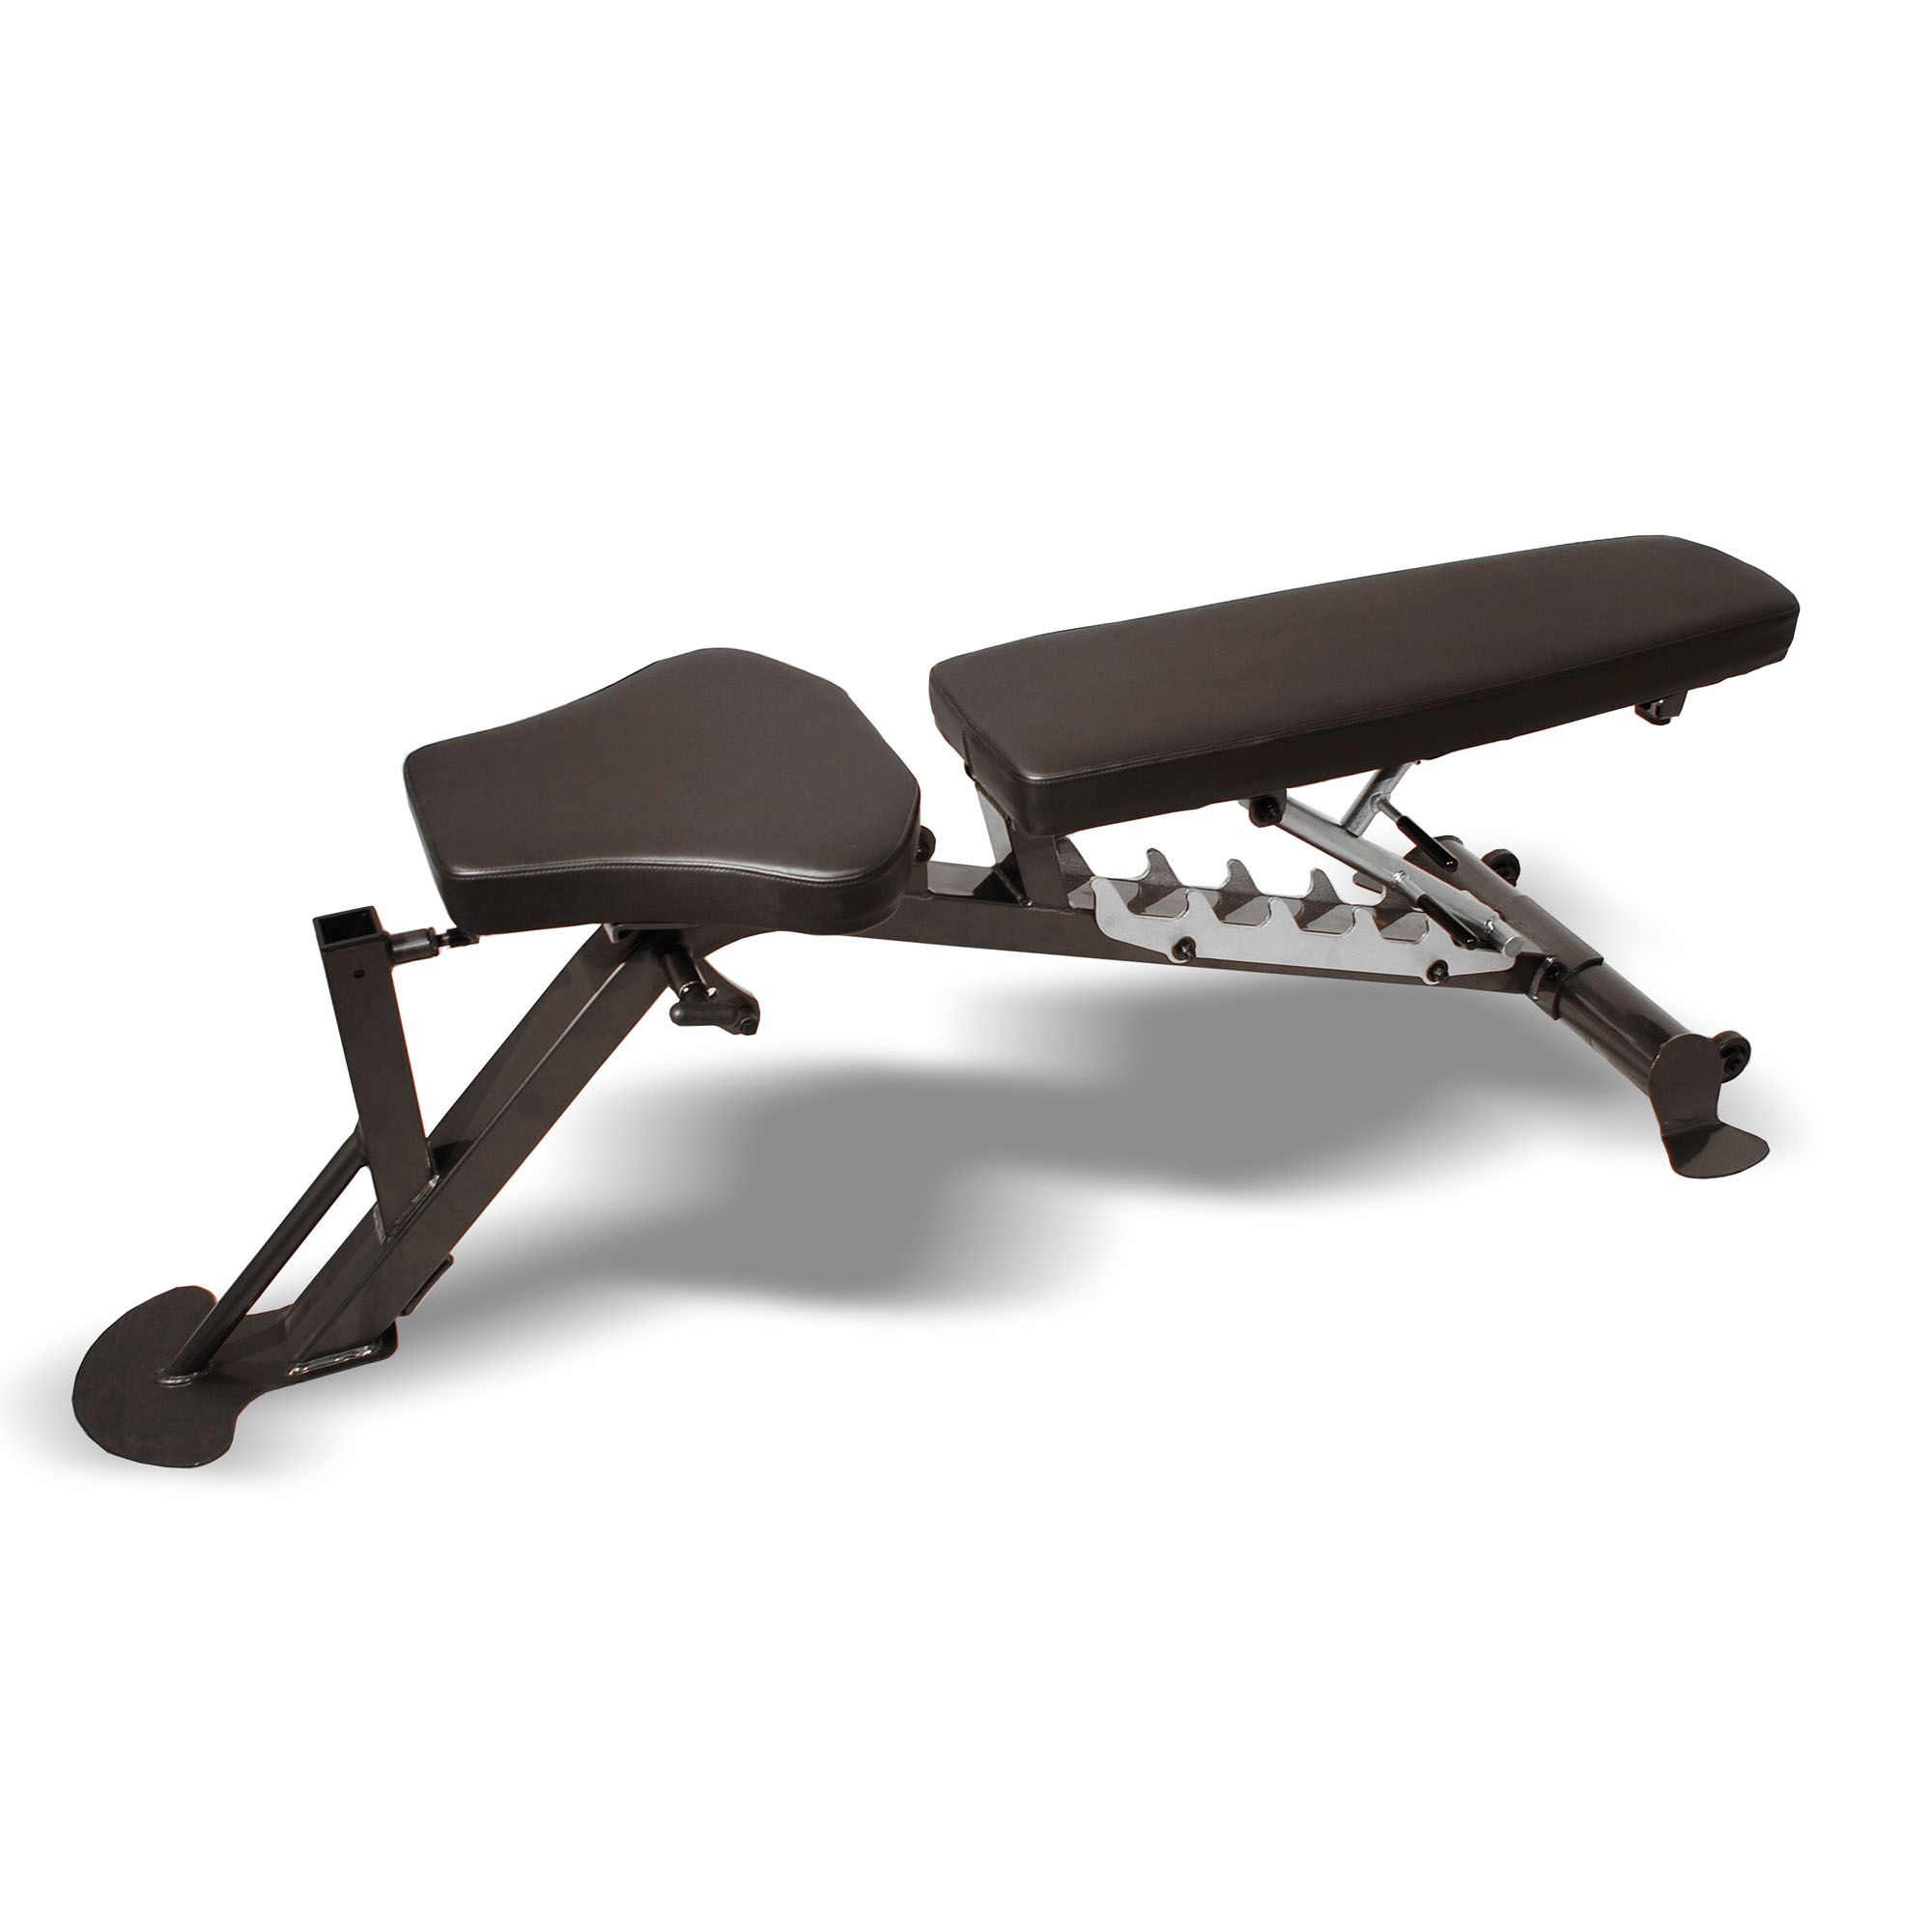 inspire fitness scs dumbbell bench